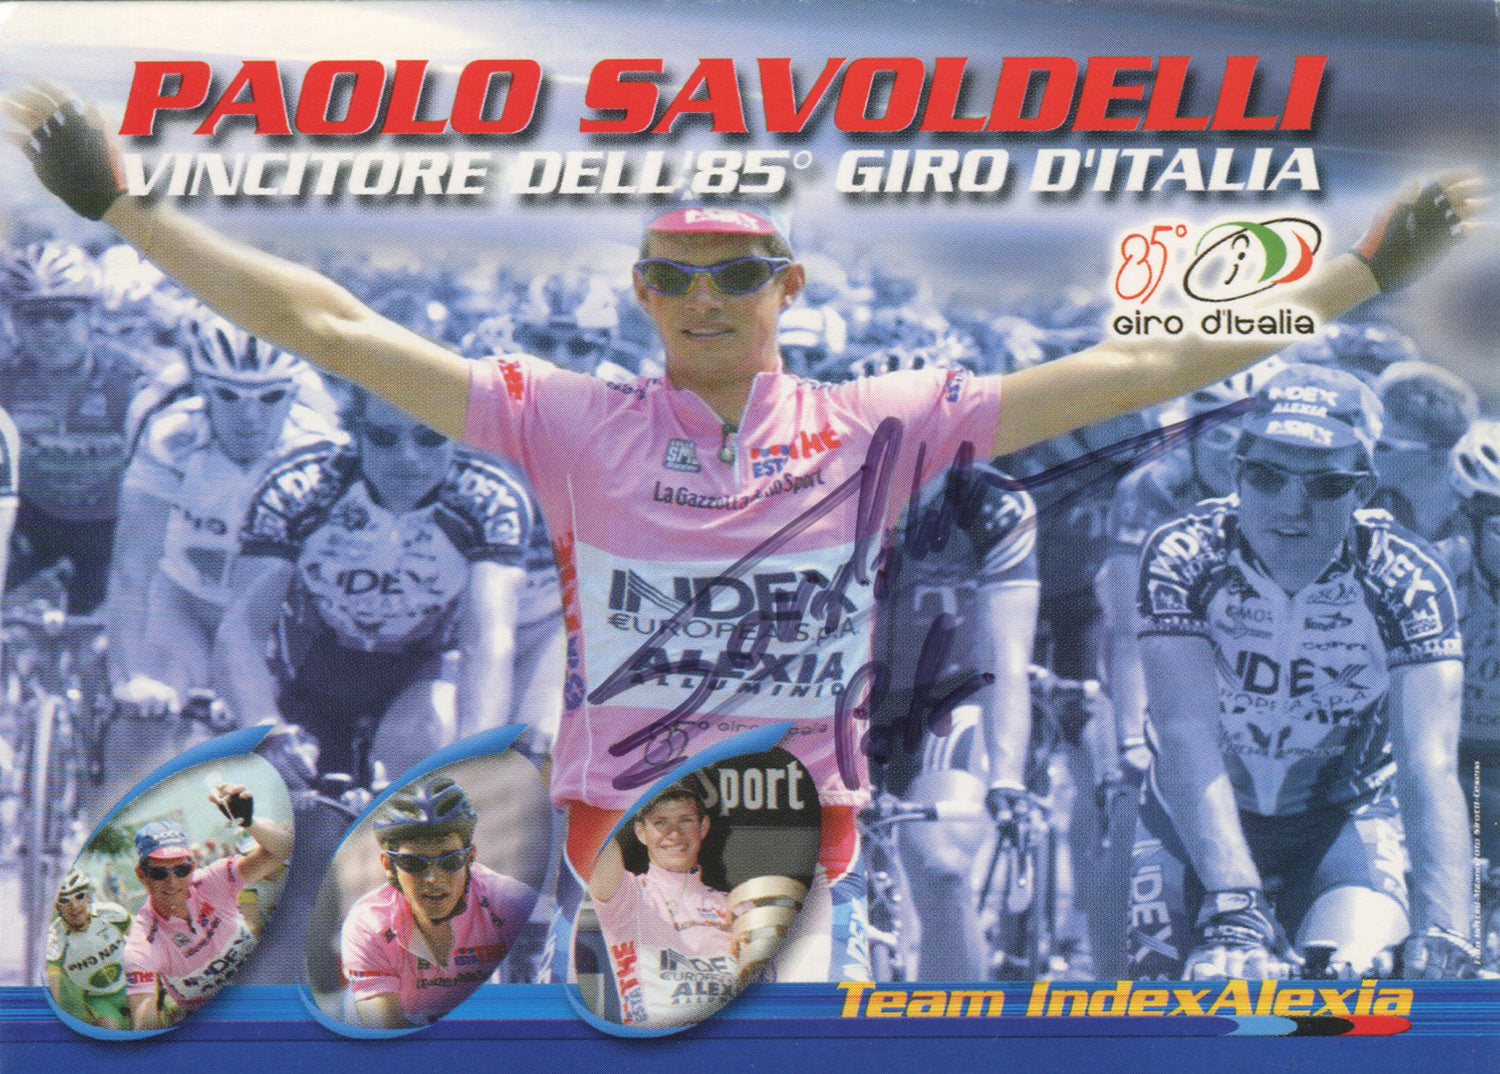 This signed postcard celebrates Paolo Savoldelli winning the 85th edition of the Giro D'Italia in 2002.